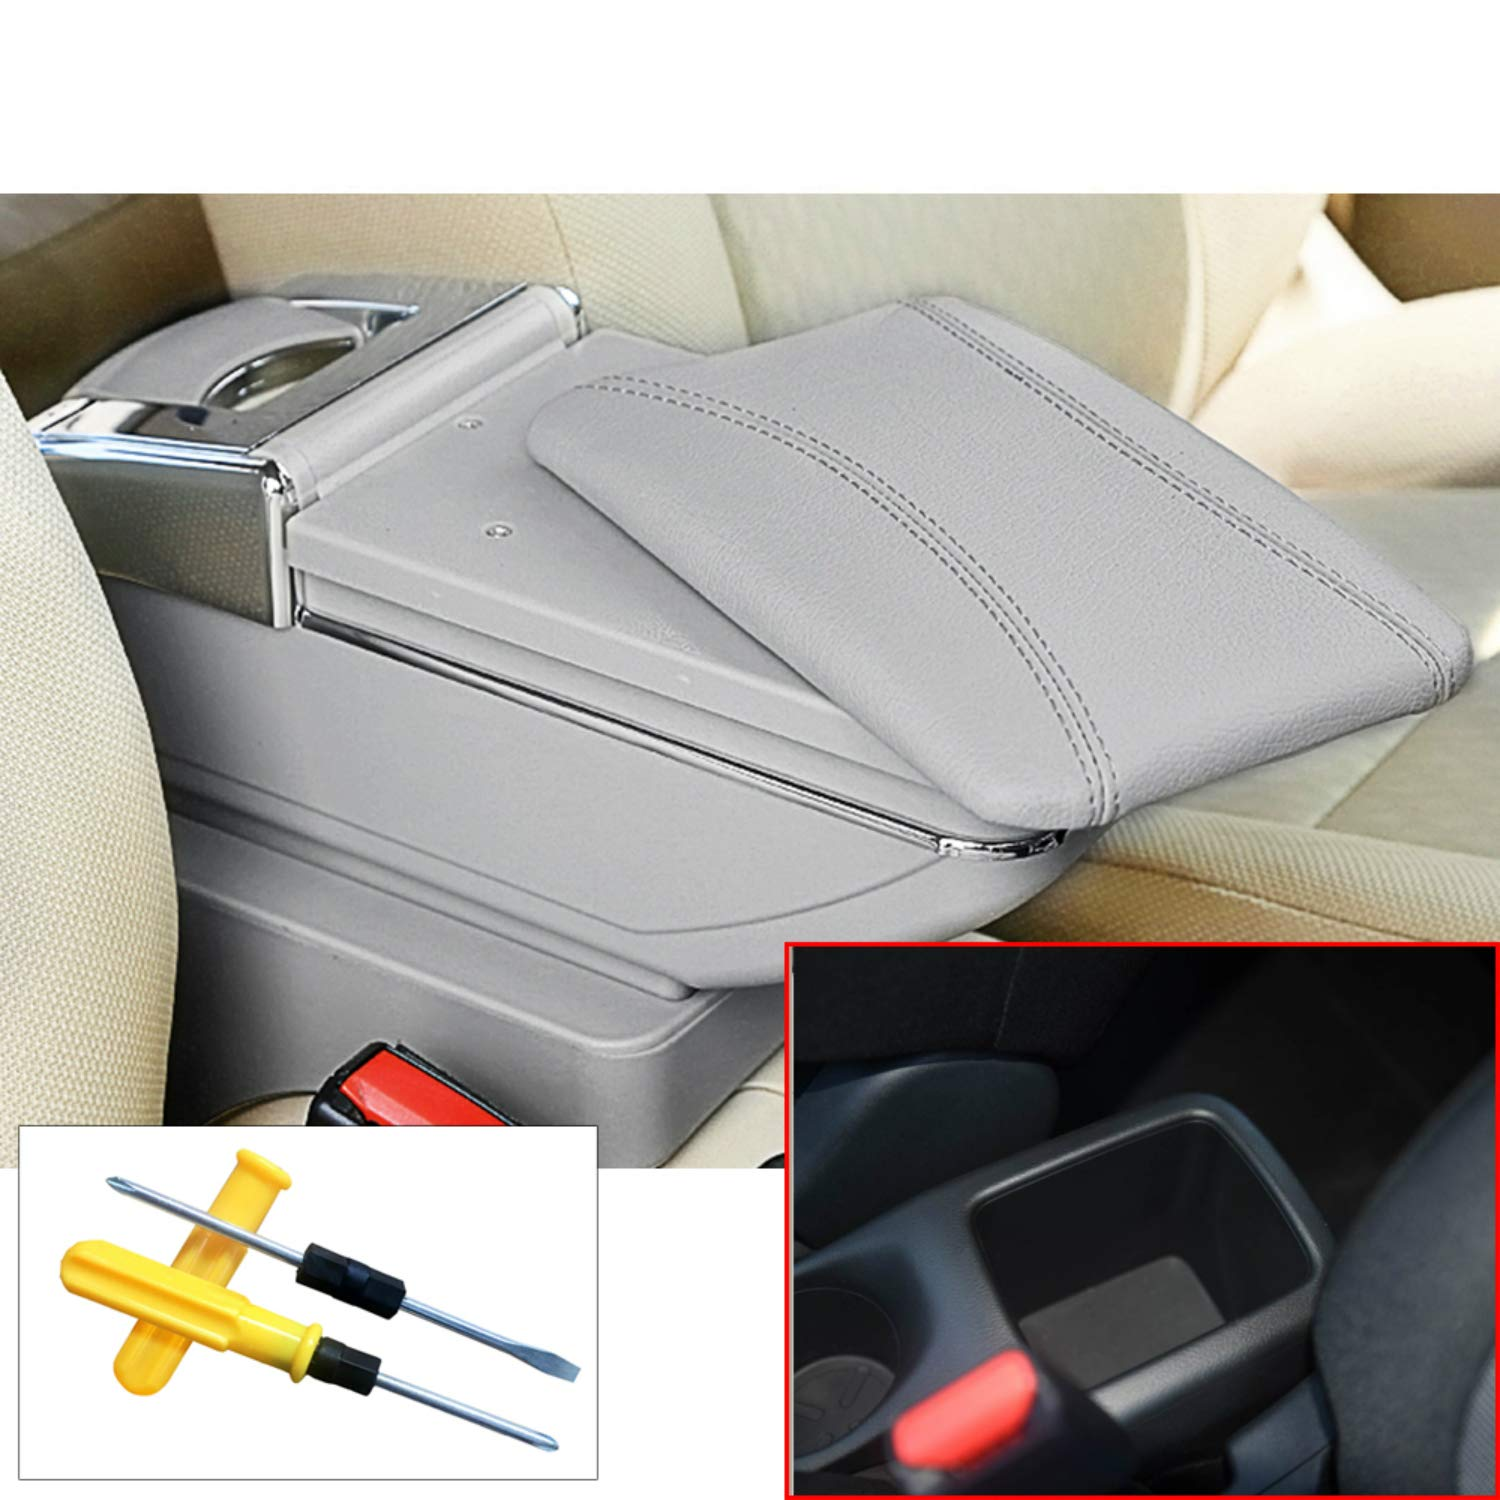 for Nissan Kicks Car Center Consoles Armrest Storage Box Accessories, Arm Rest,with Cup Holder, Removable Ashtray, Black Arm Rest, with Cup Holder MyGone